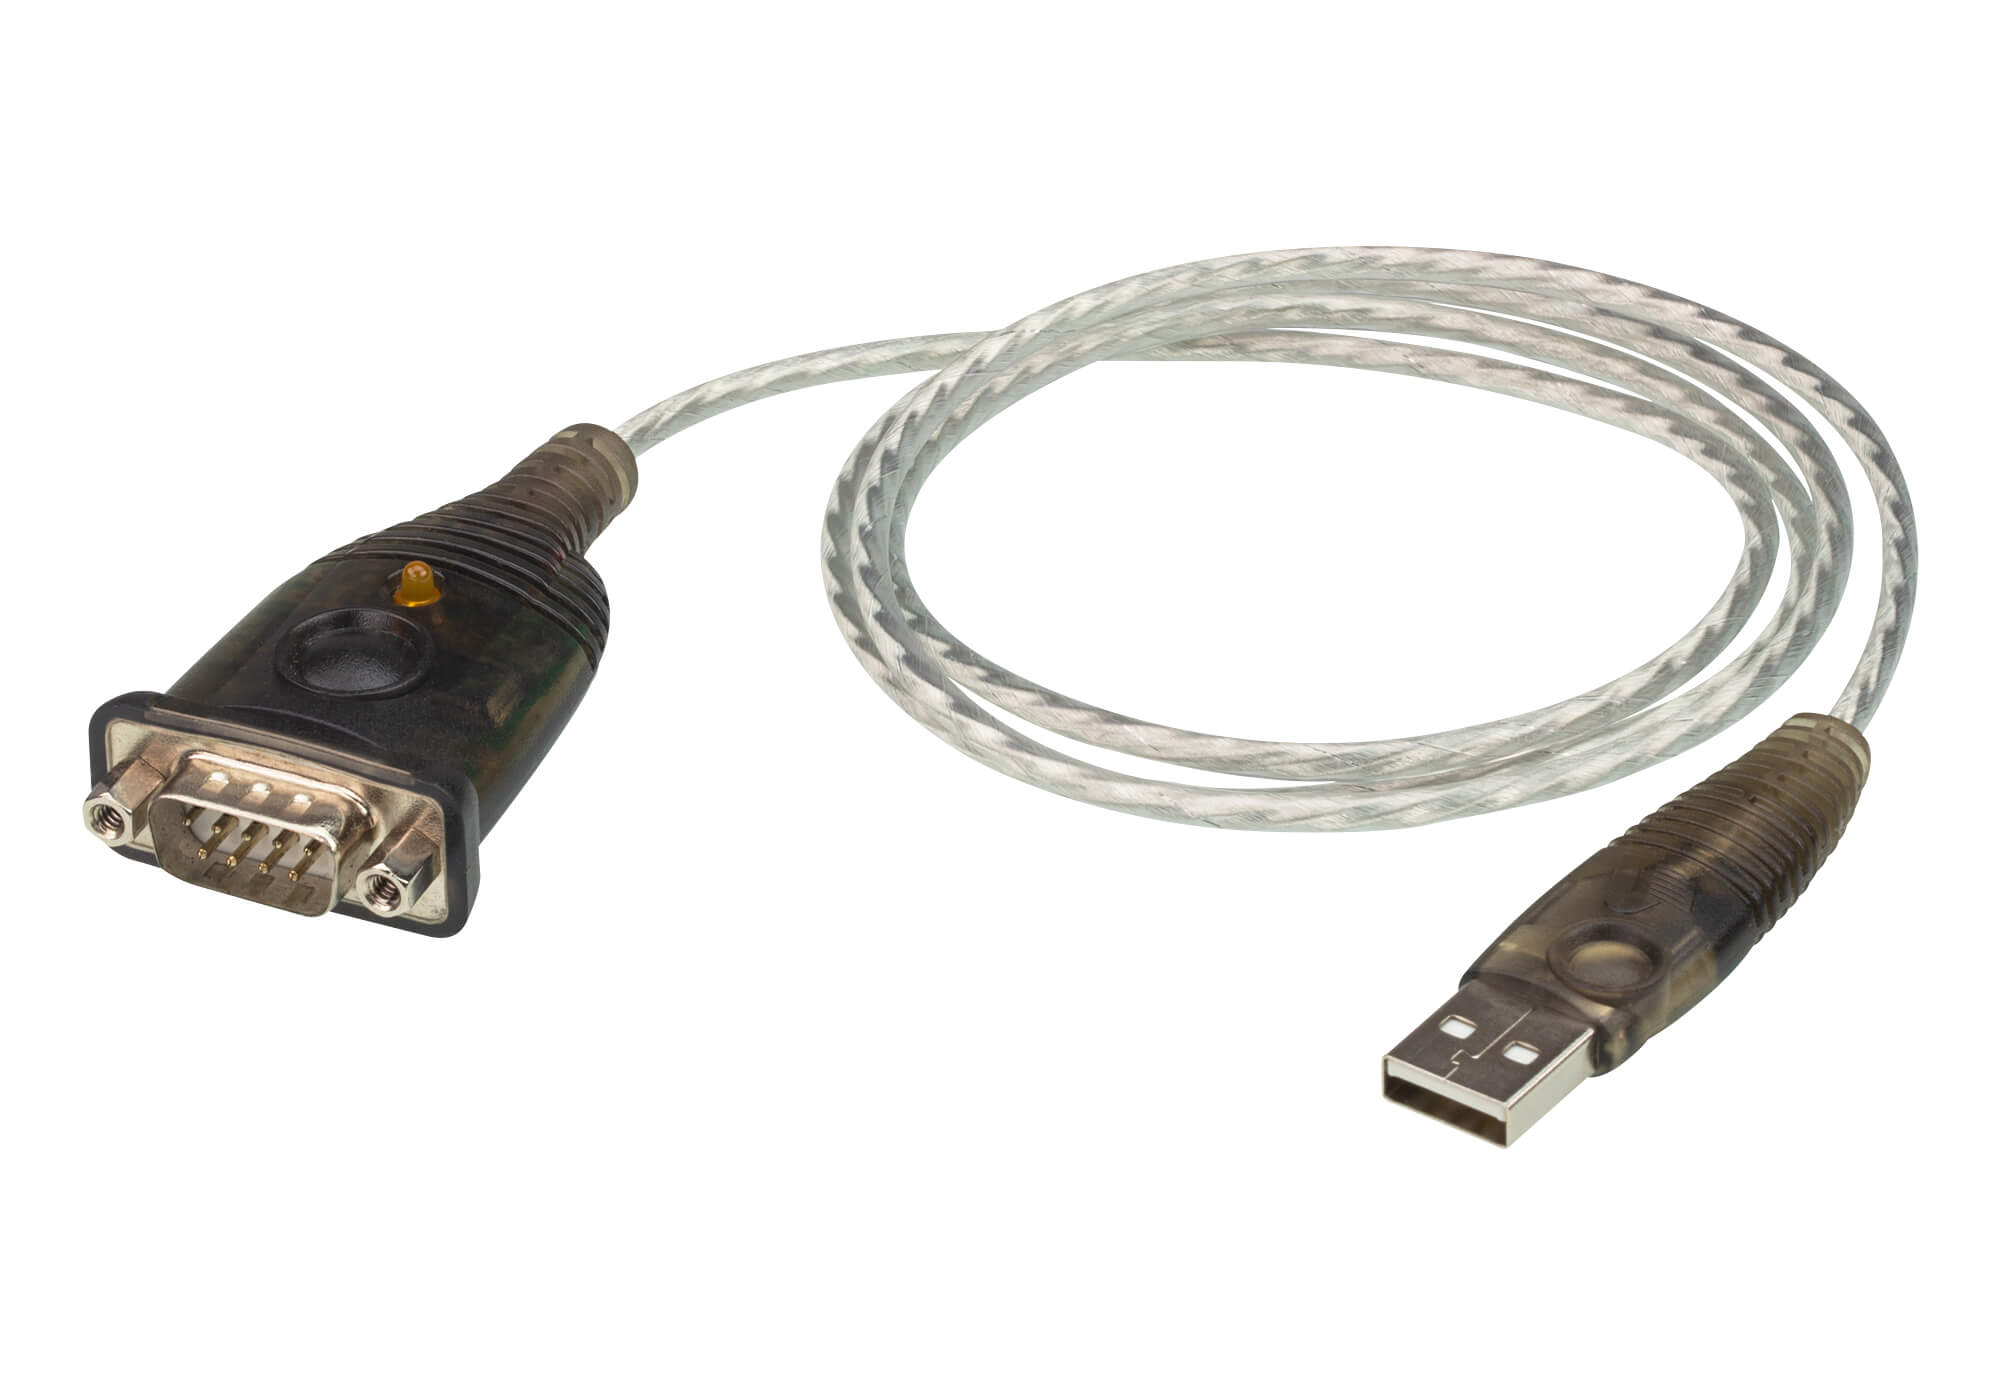 Usb To Rs-232 Adapter (100 Cm) - Uc232A1, Aten Usb Converters - Usb To Serial Cable Win 10 Wiring Diagram